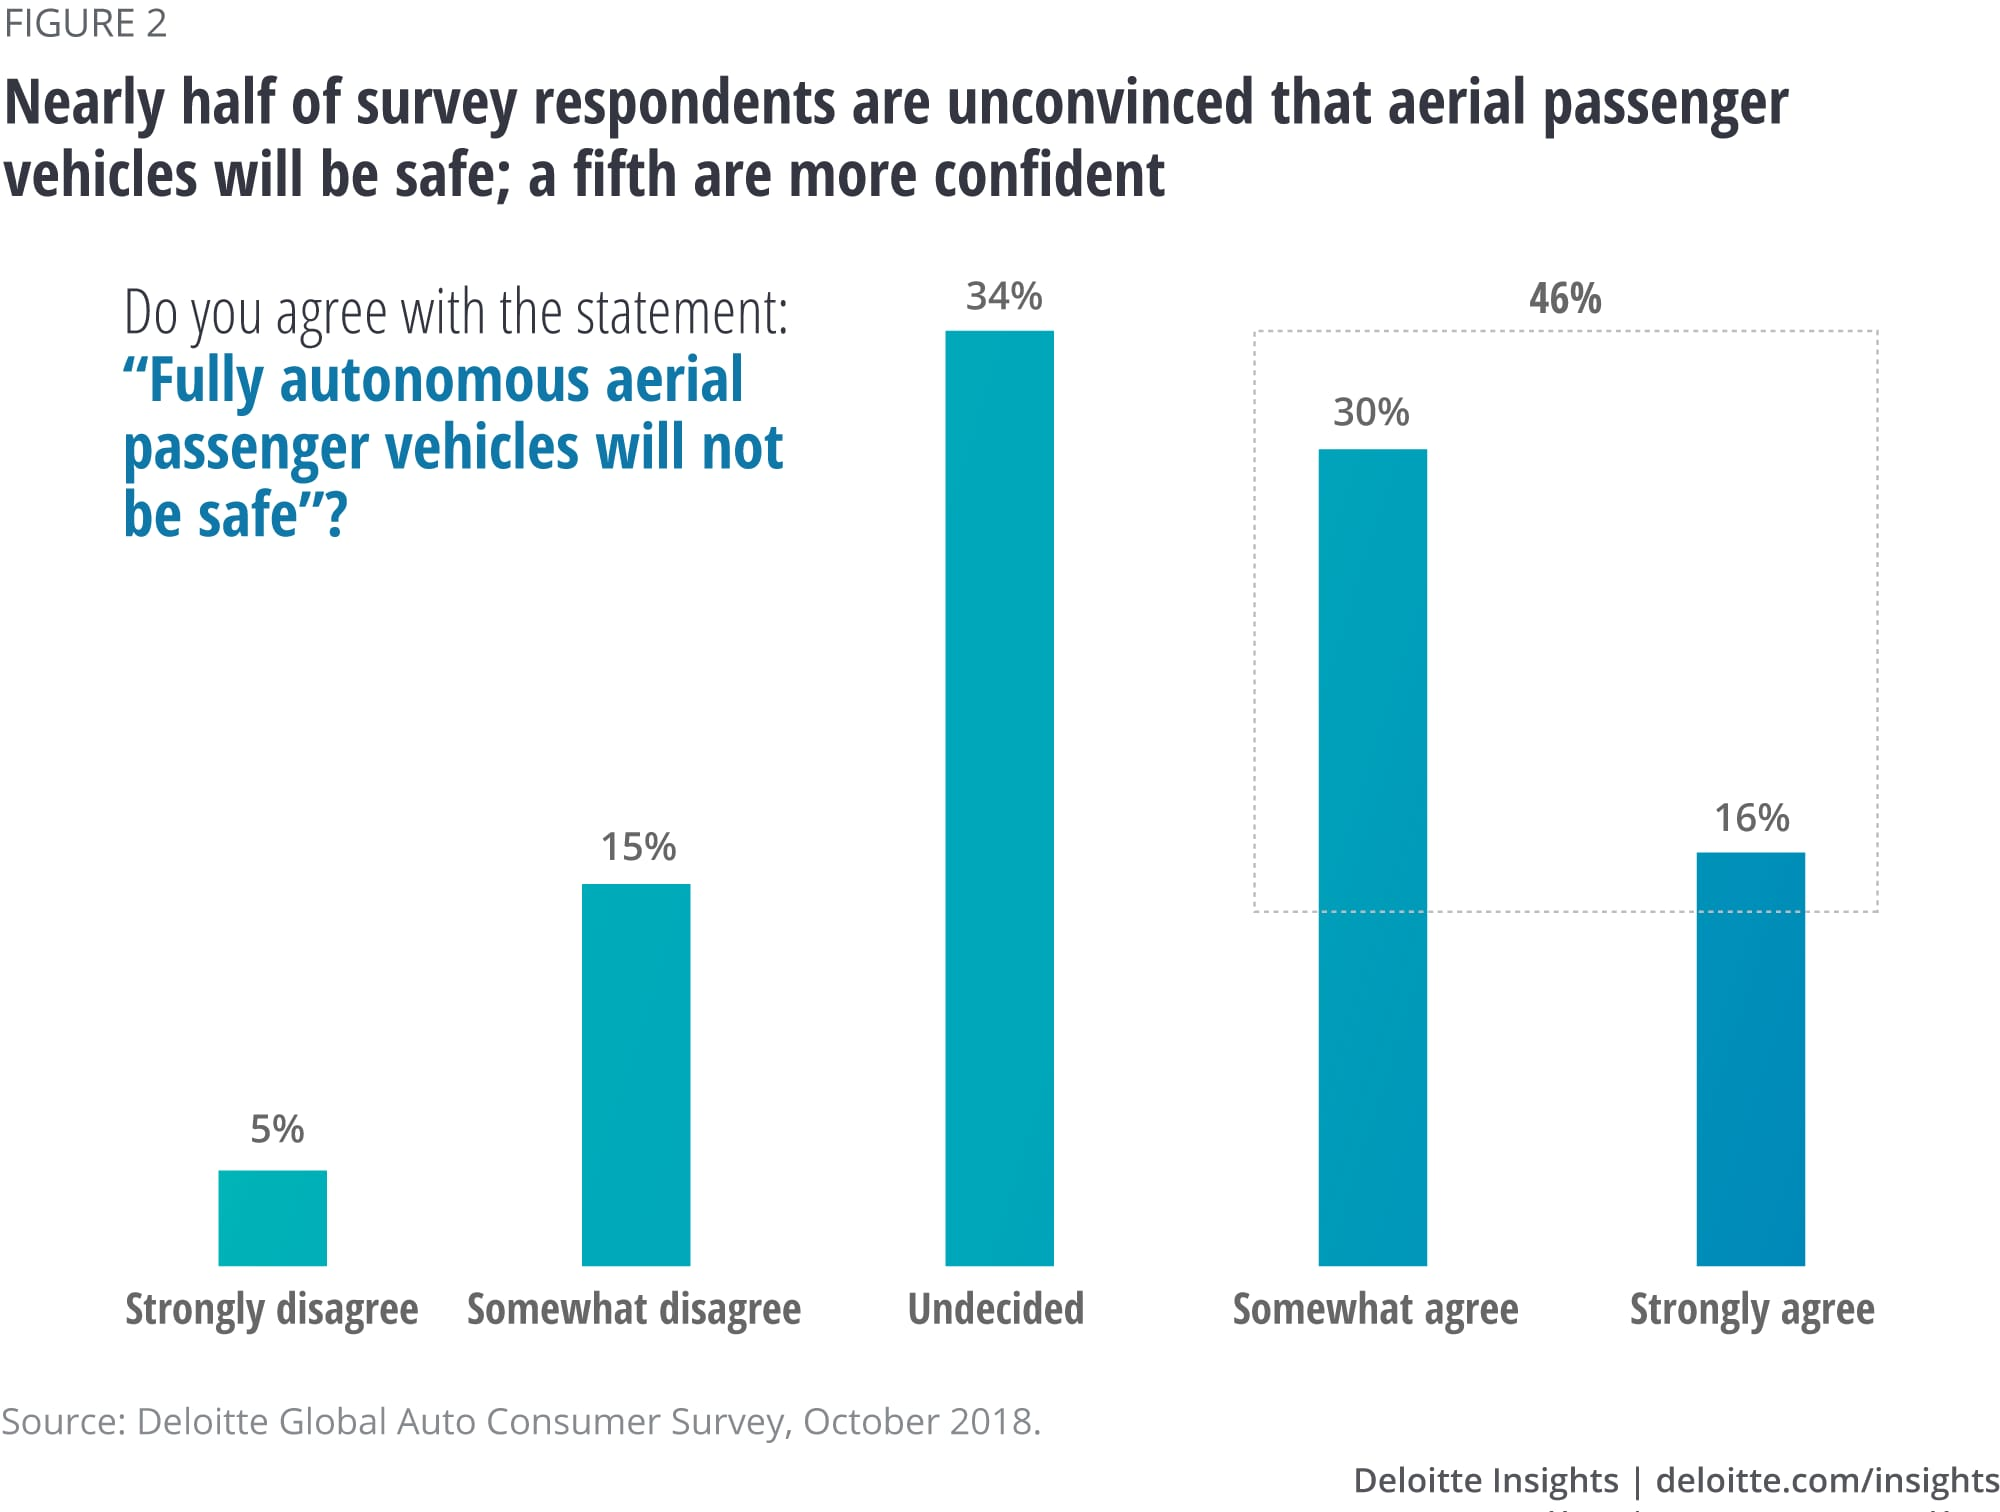 Nearly half of survey respondents are unconvinced that aerial passenger vehicles will be safe; a fifth are more confident